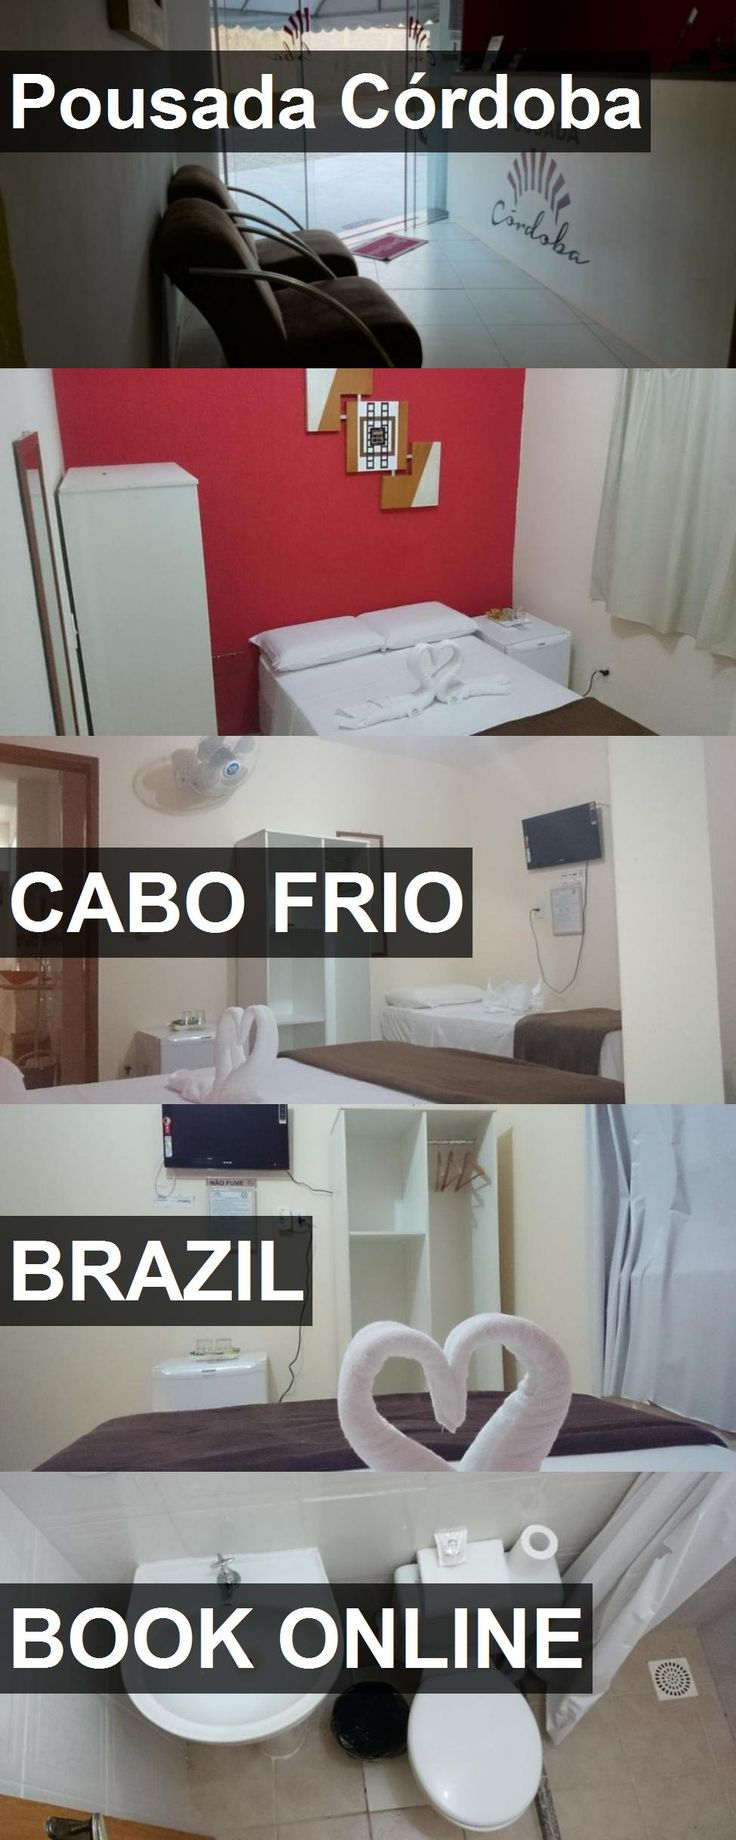 Hotel Pousada Córdoba in Cabo Frio, Brazil. For more information, photos, reviews and best prices please follow the link. #Brazil #CaboFrio #travel #vacation #hotel